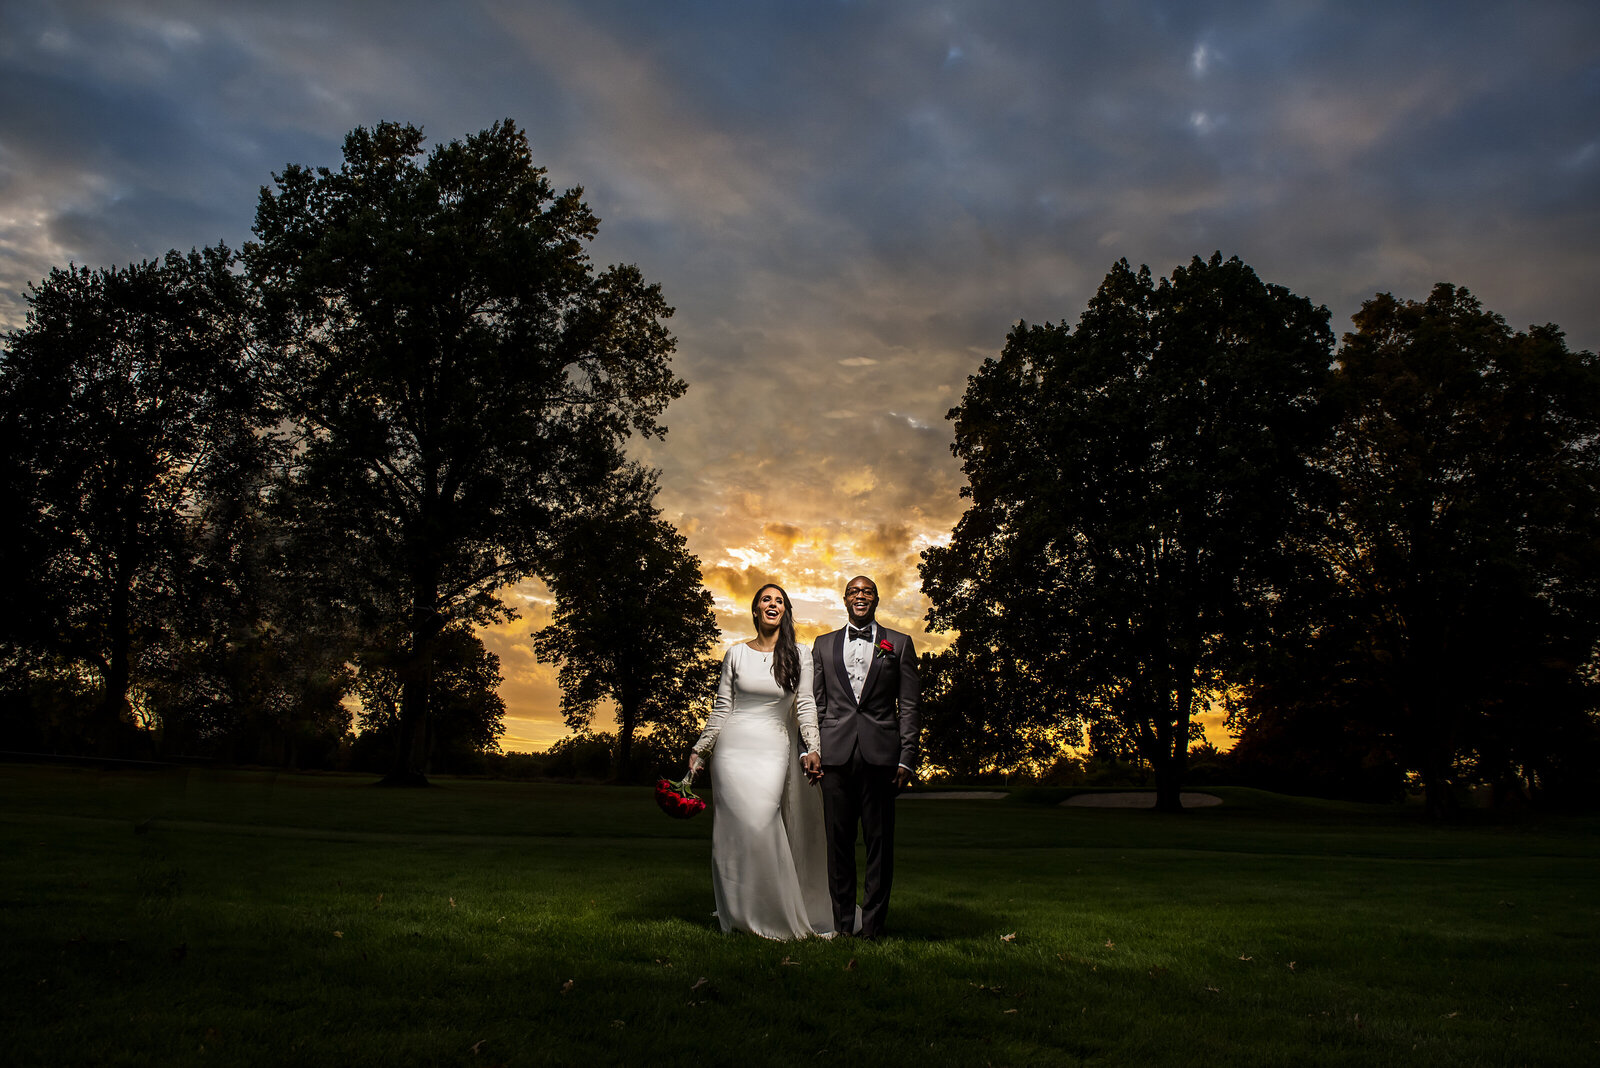 A white bride and black groom  stand happily on a gold course, with extreme colors in the sky.